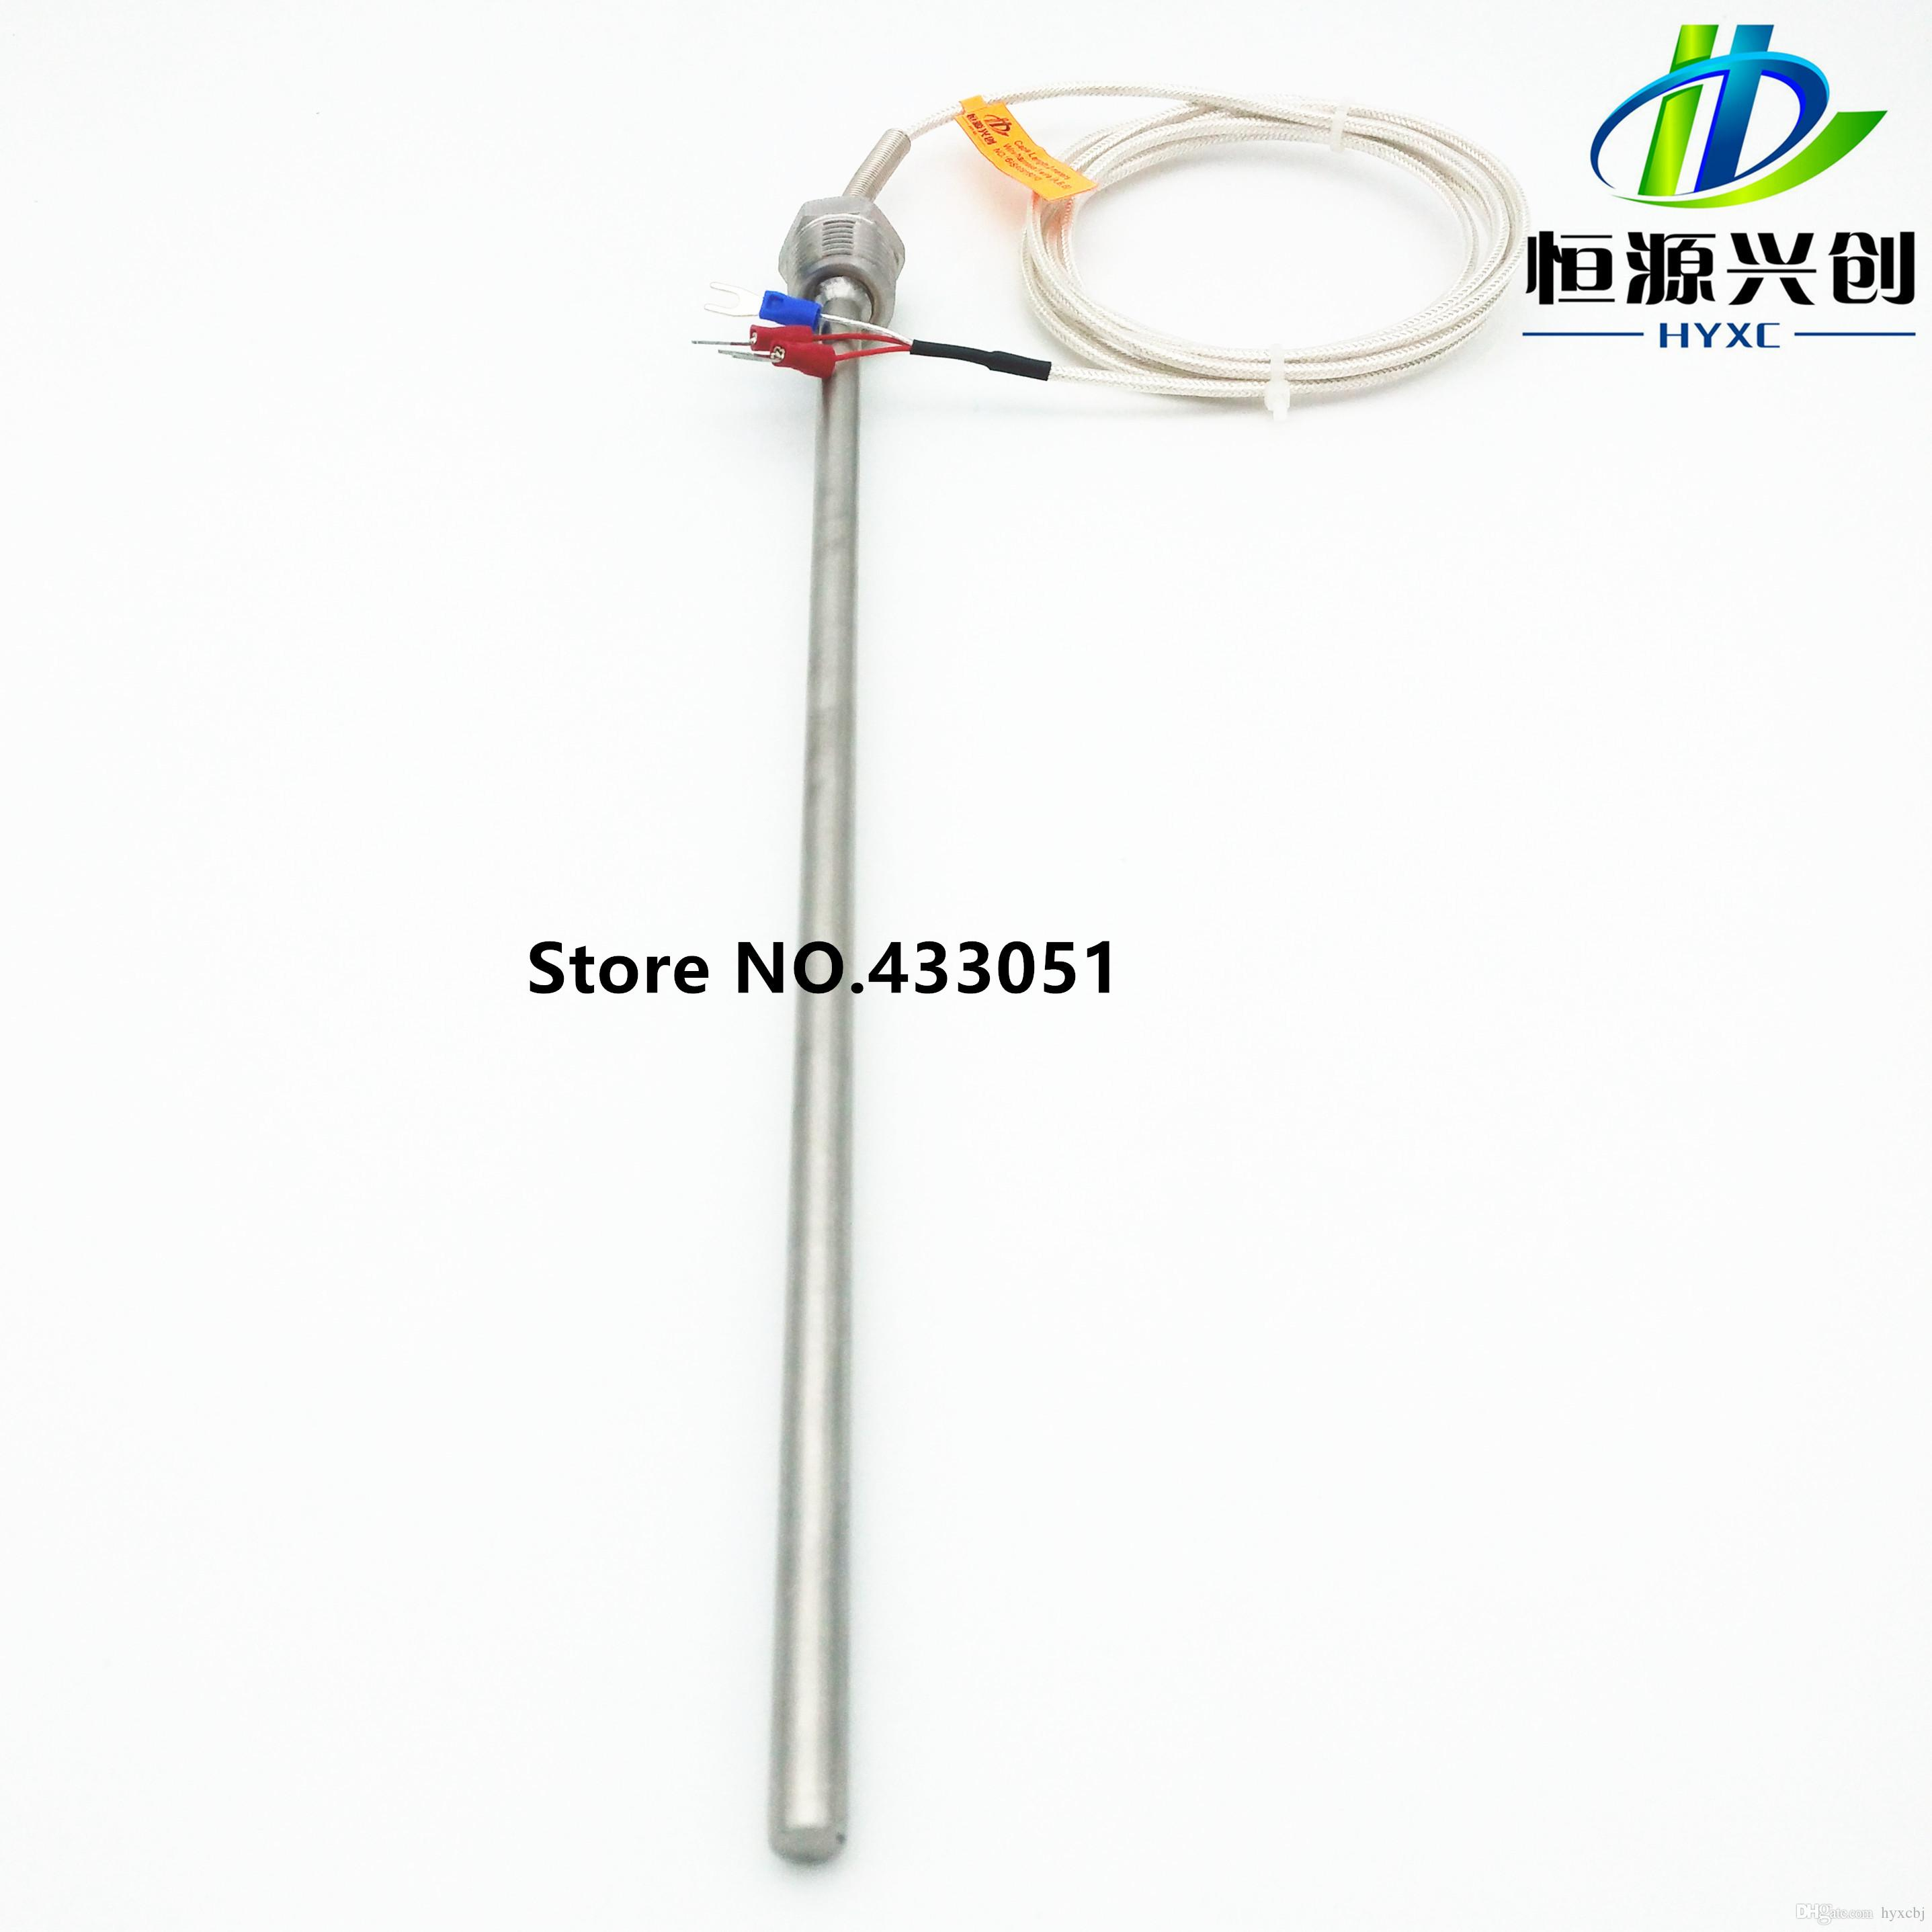 Pt100 Ohm Probe Sensor L 300mm Long Type Pt Npt 1 2